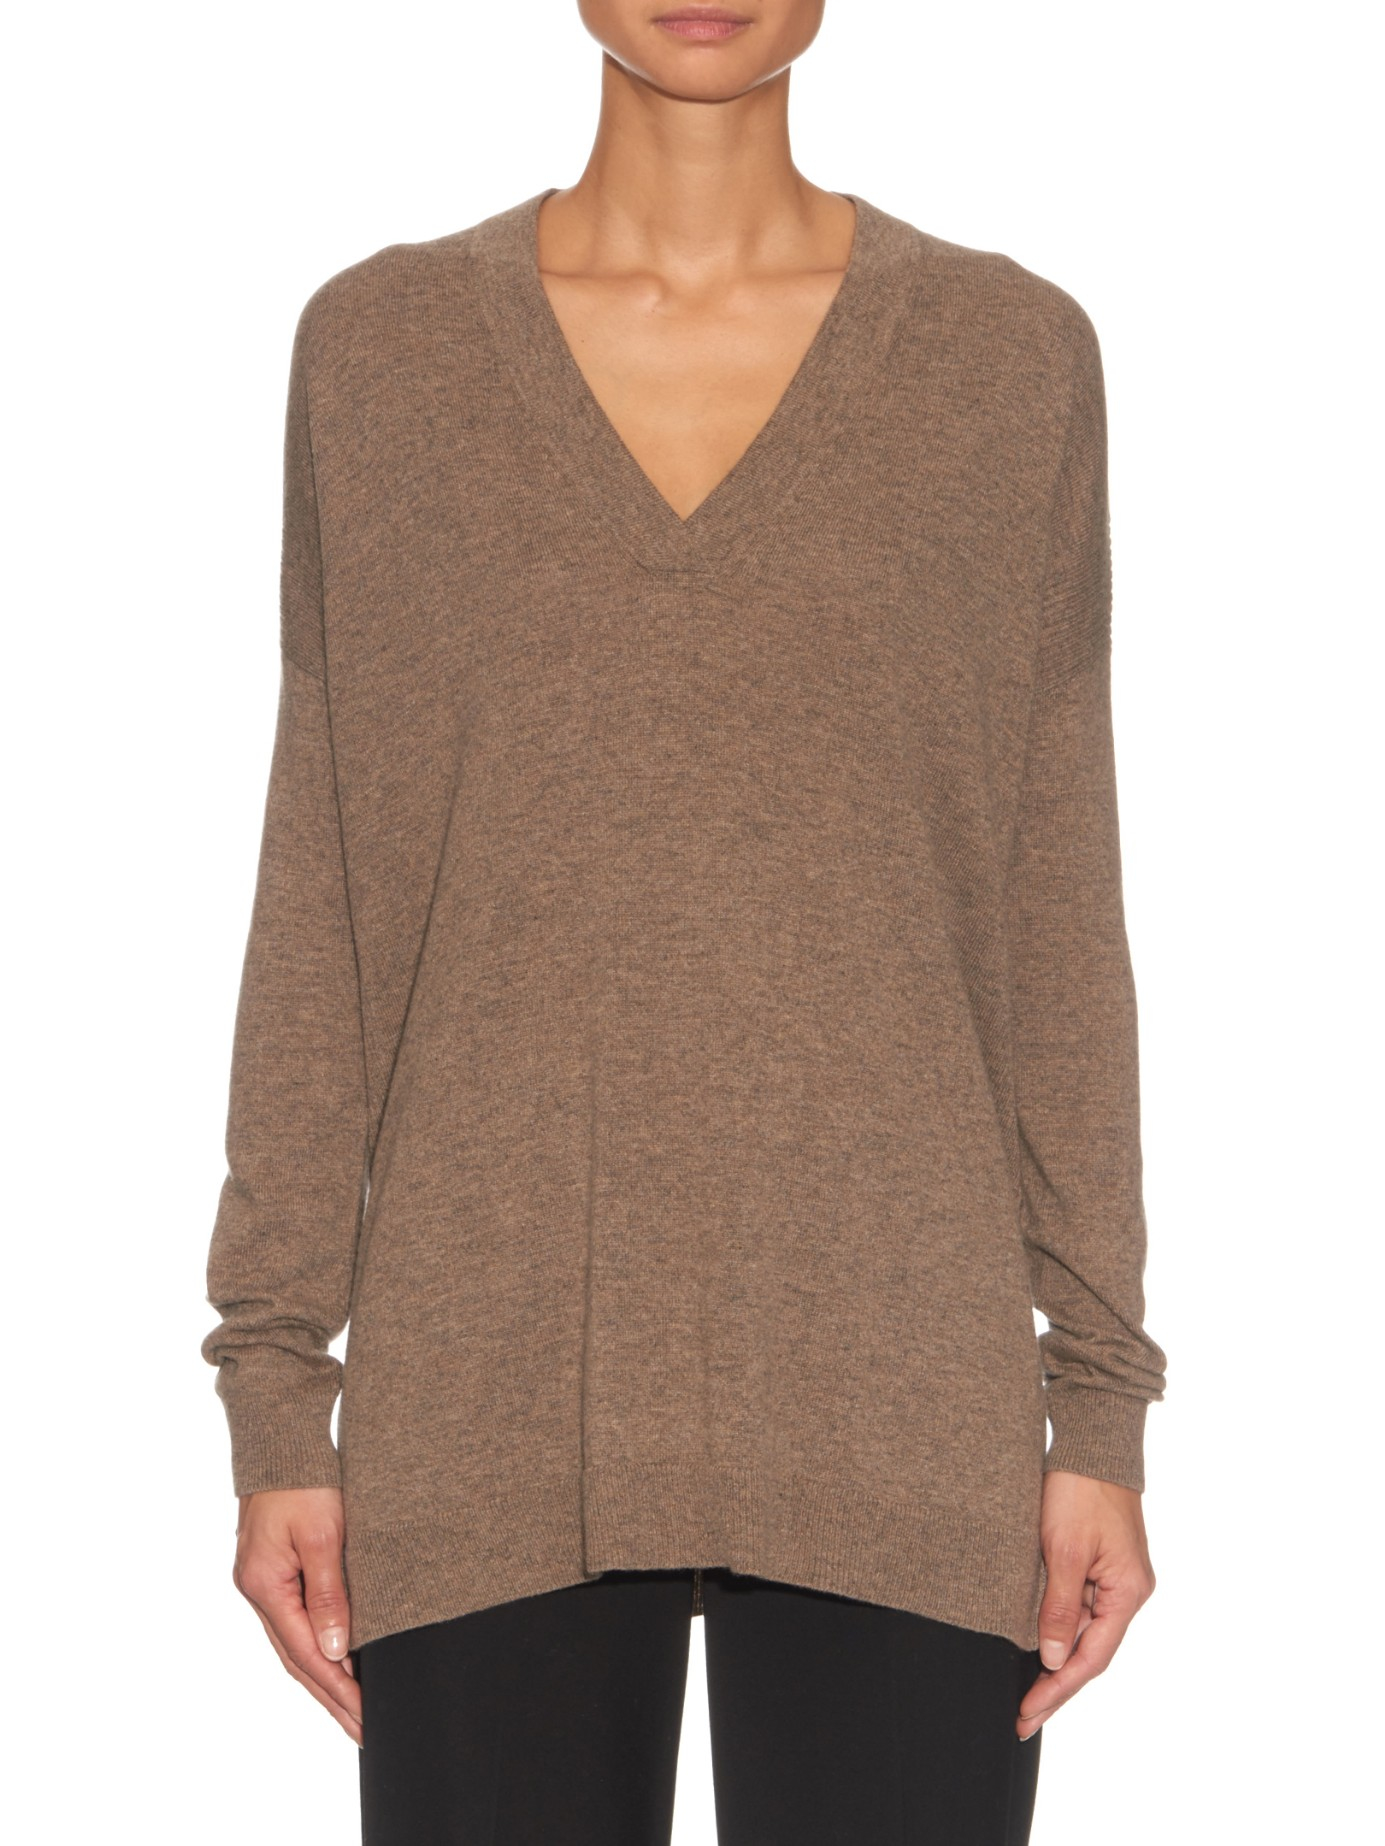 Vince V-neck Ribbed-knit Cashmere Sweater in Brown | Lyst